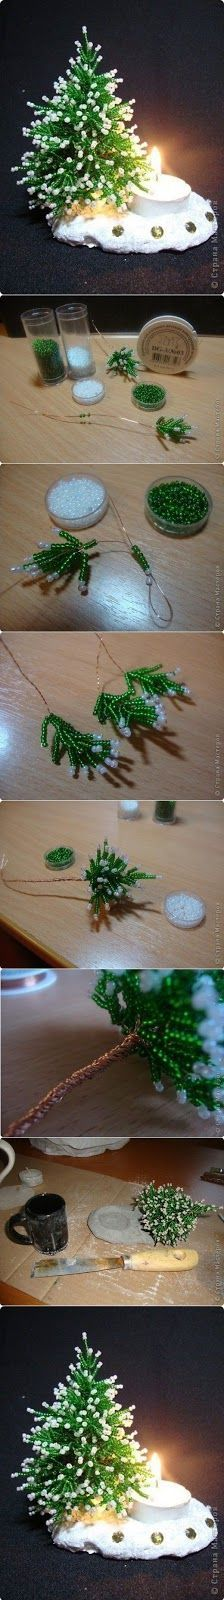 beading christmas tree DIY